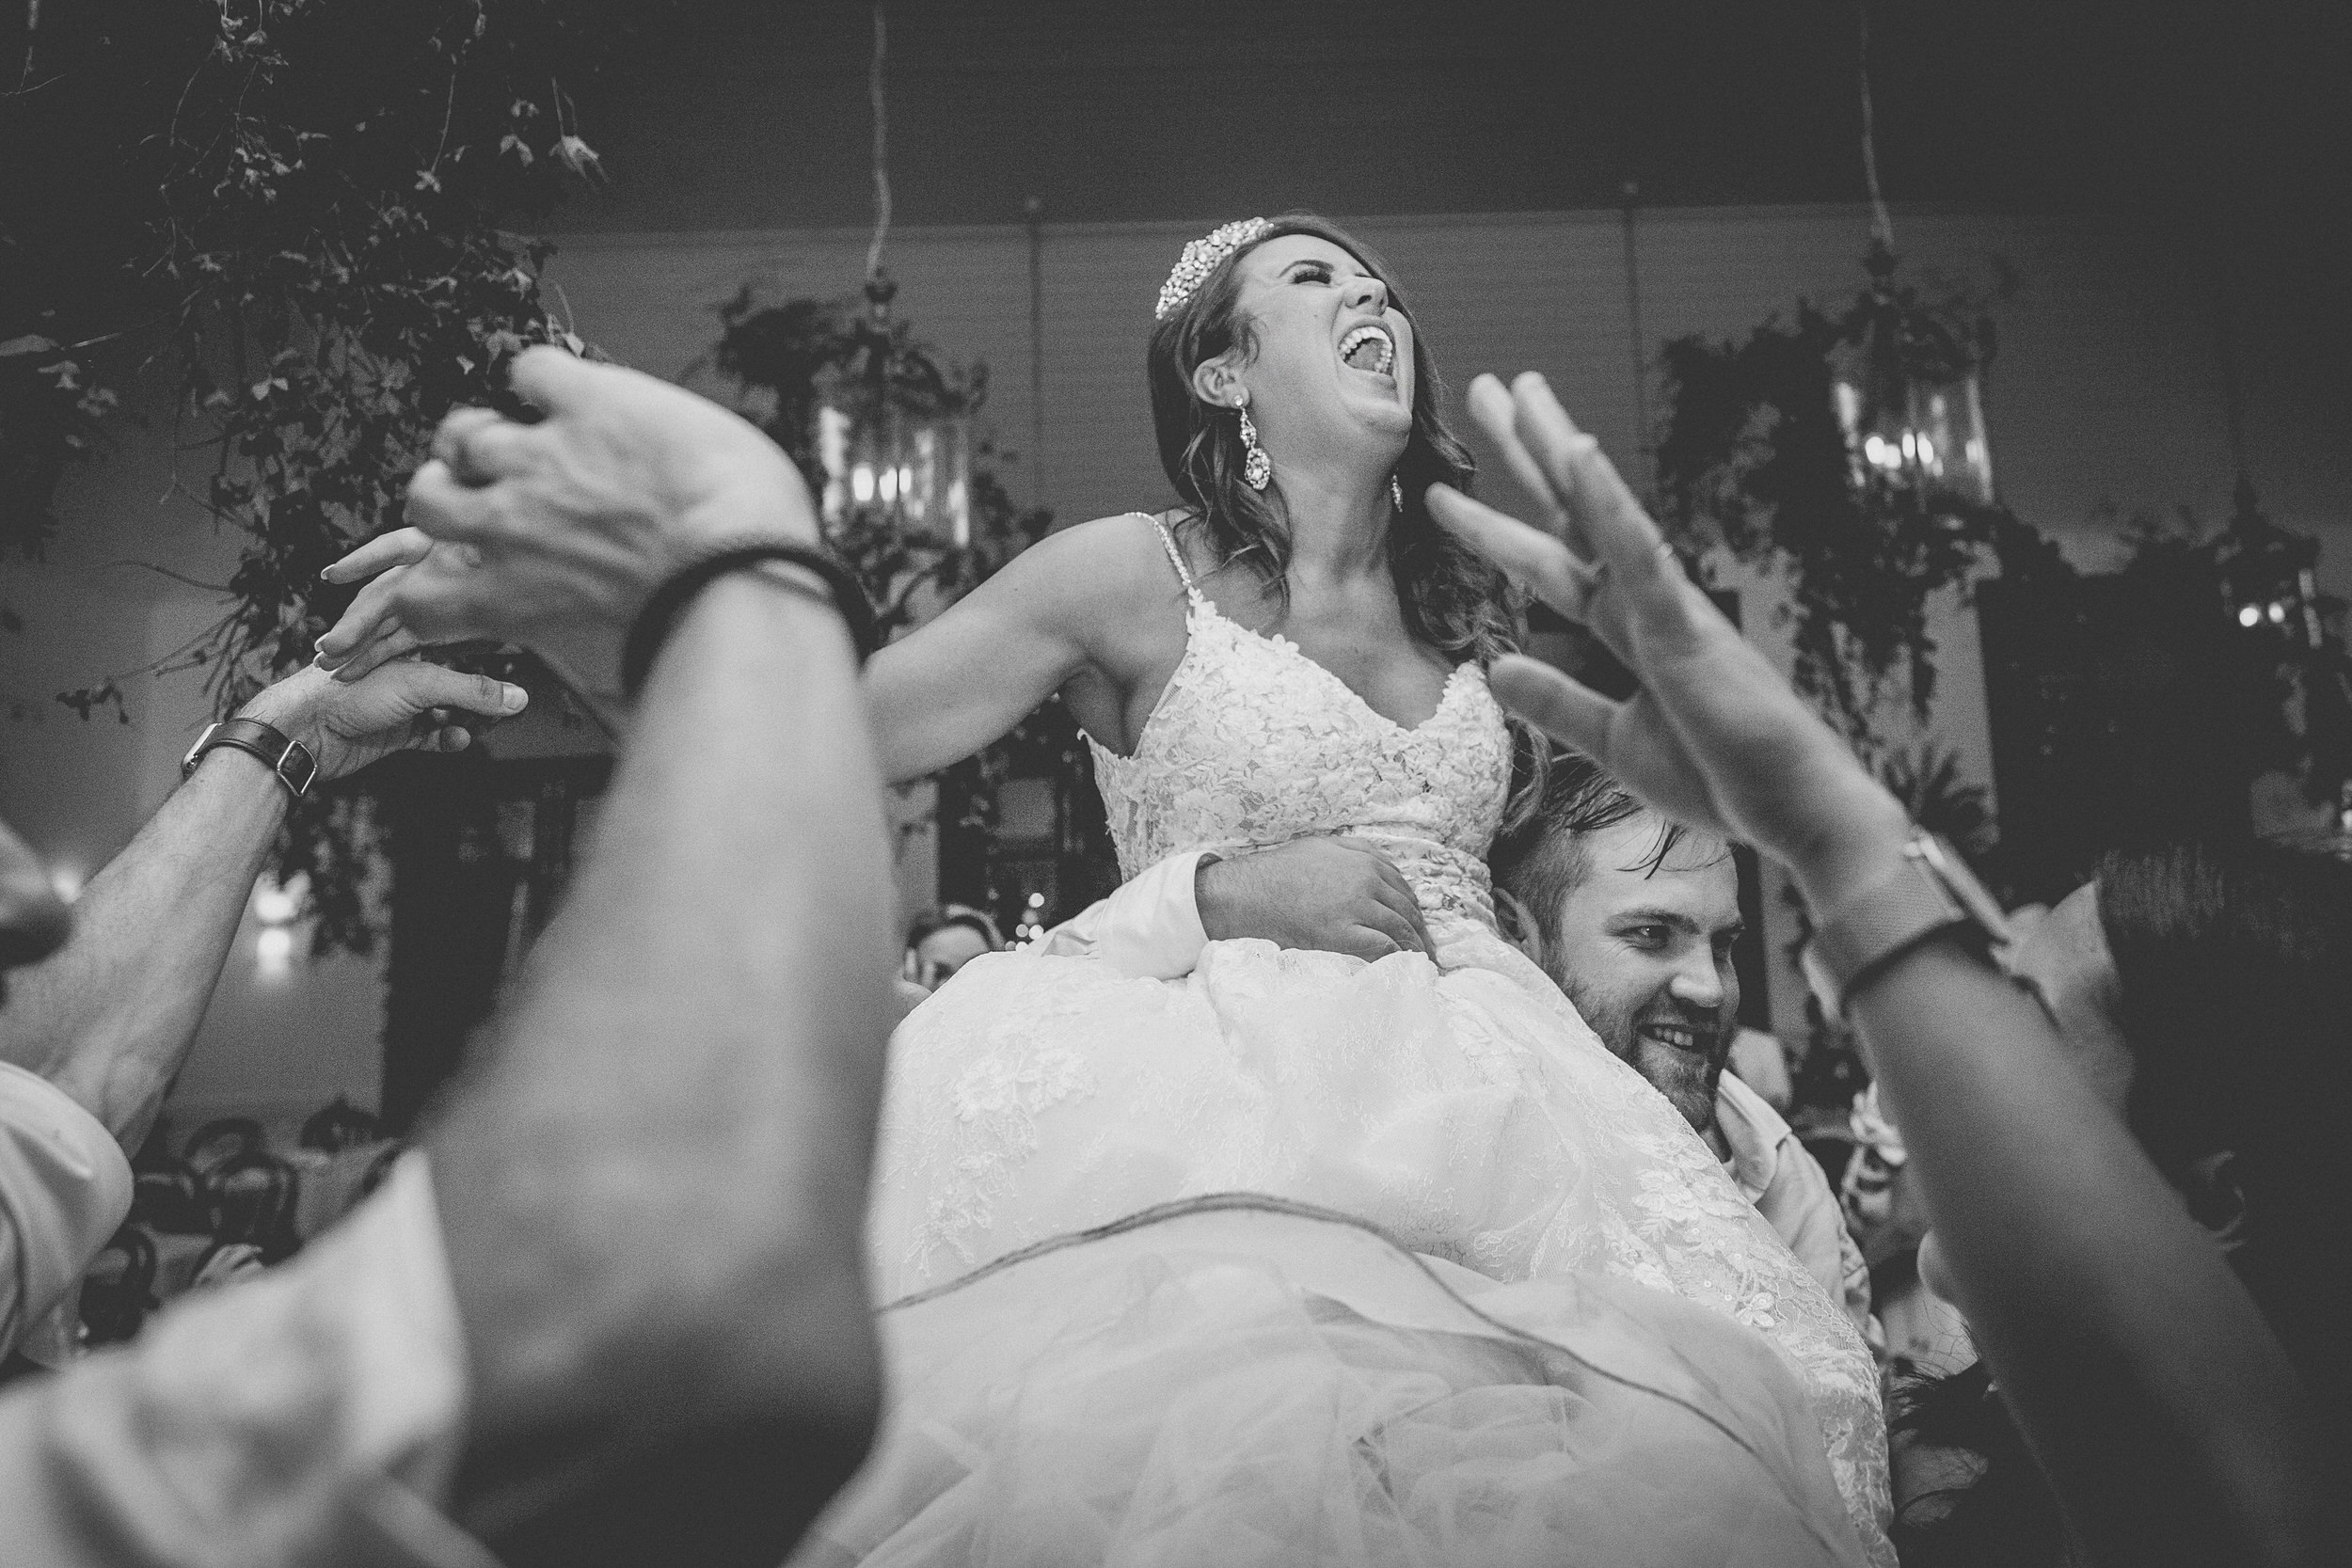 The brides brother lifts her up with everyone cheering around her